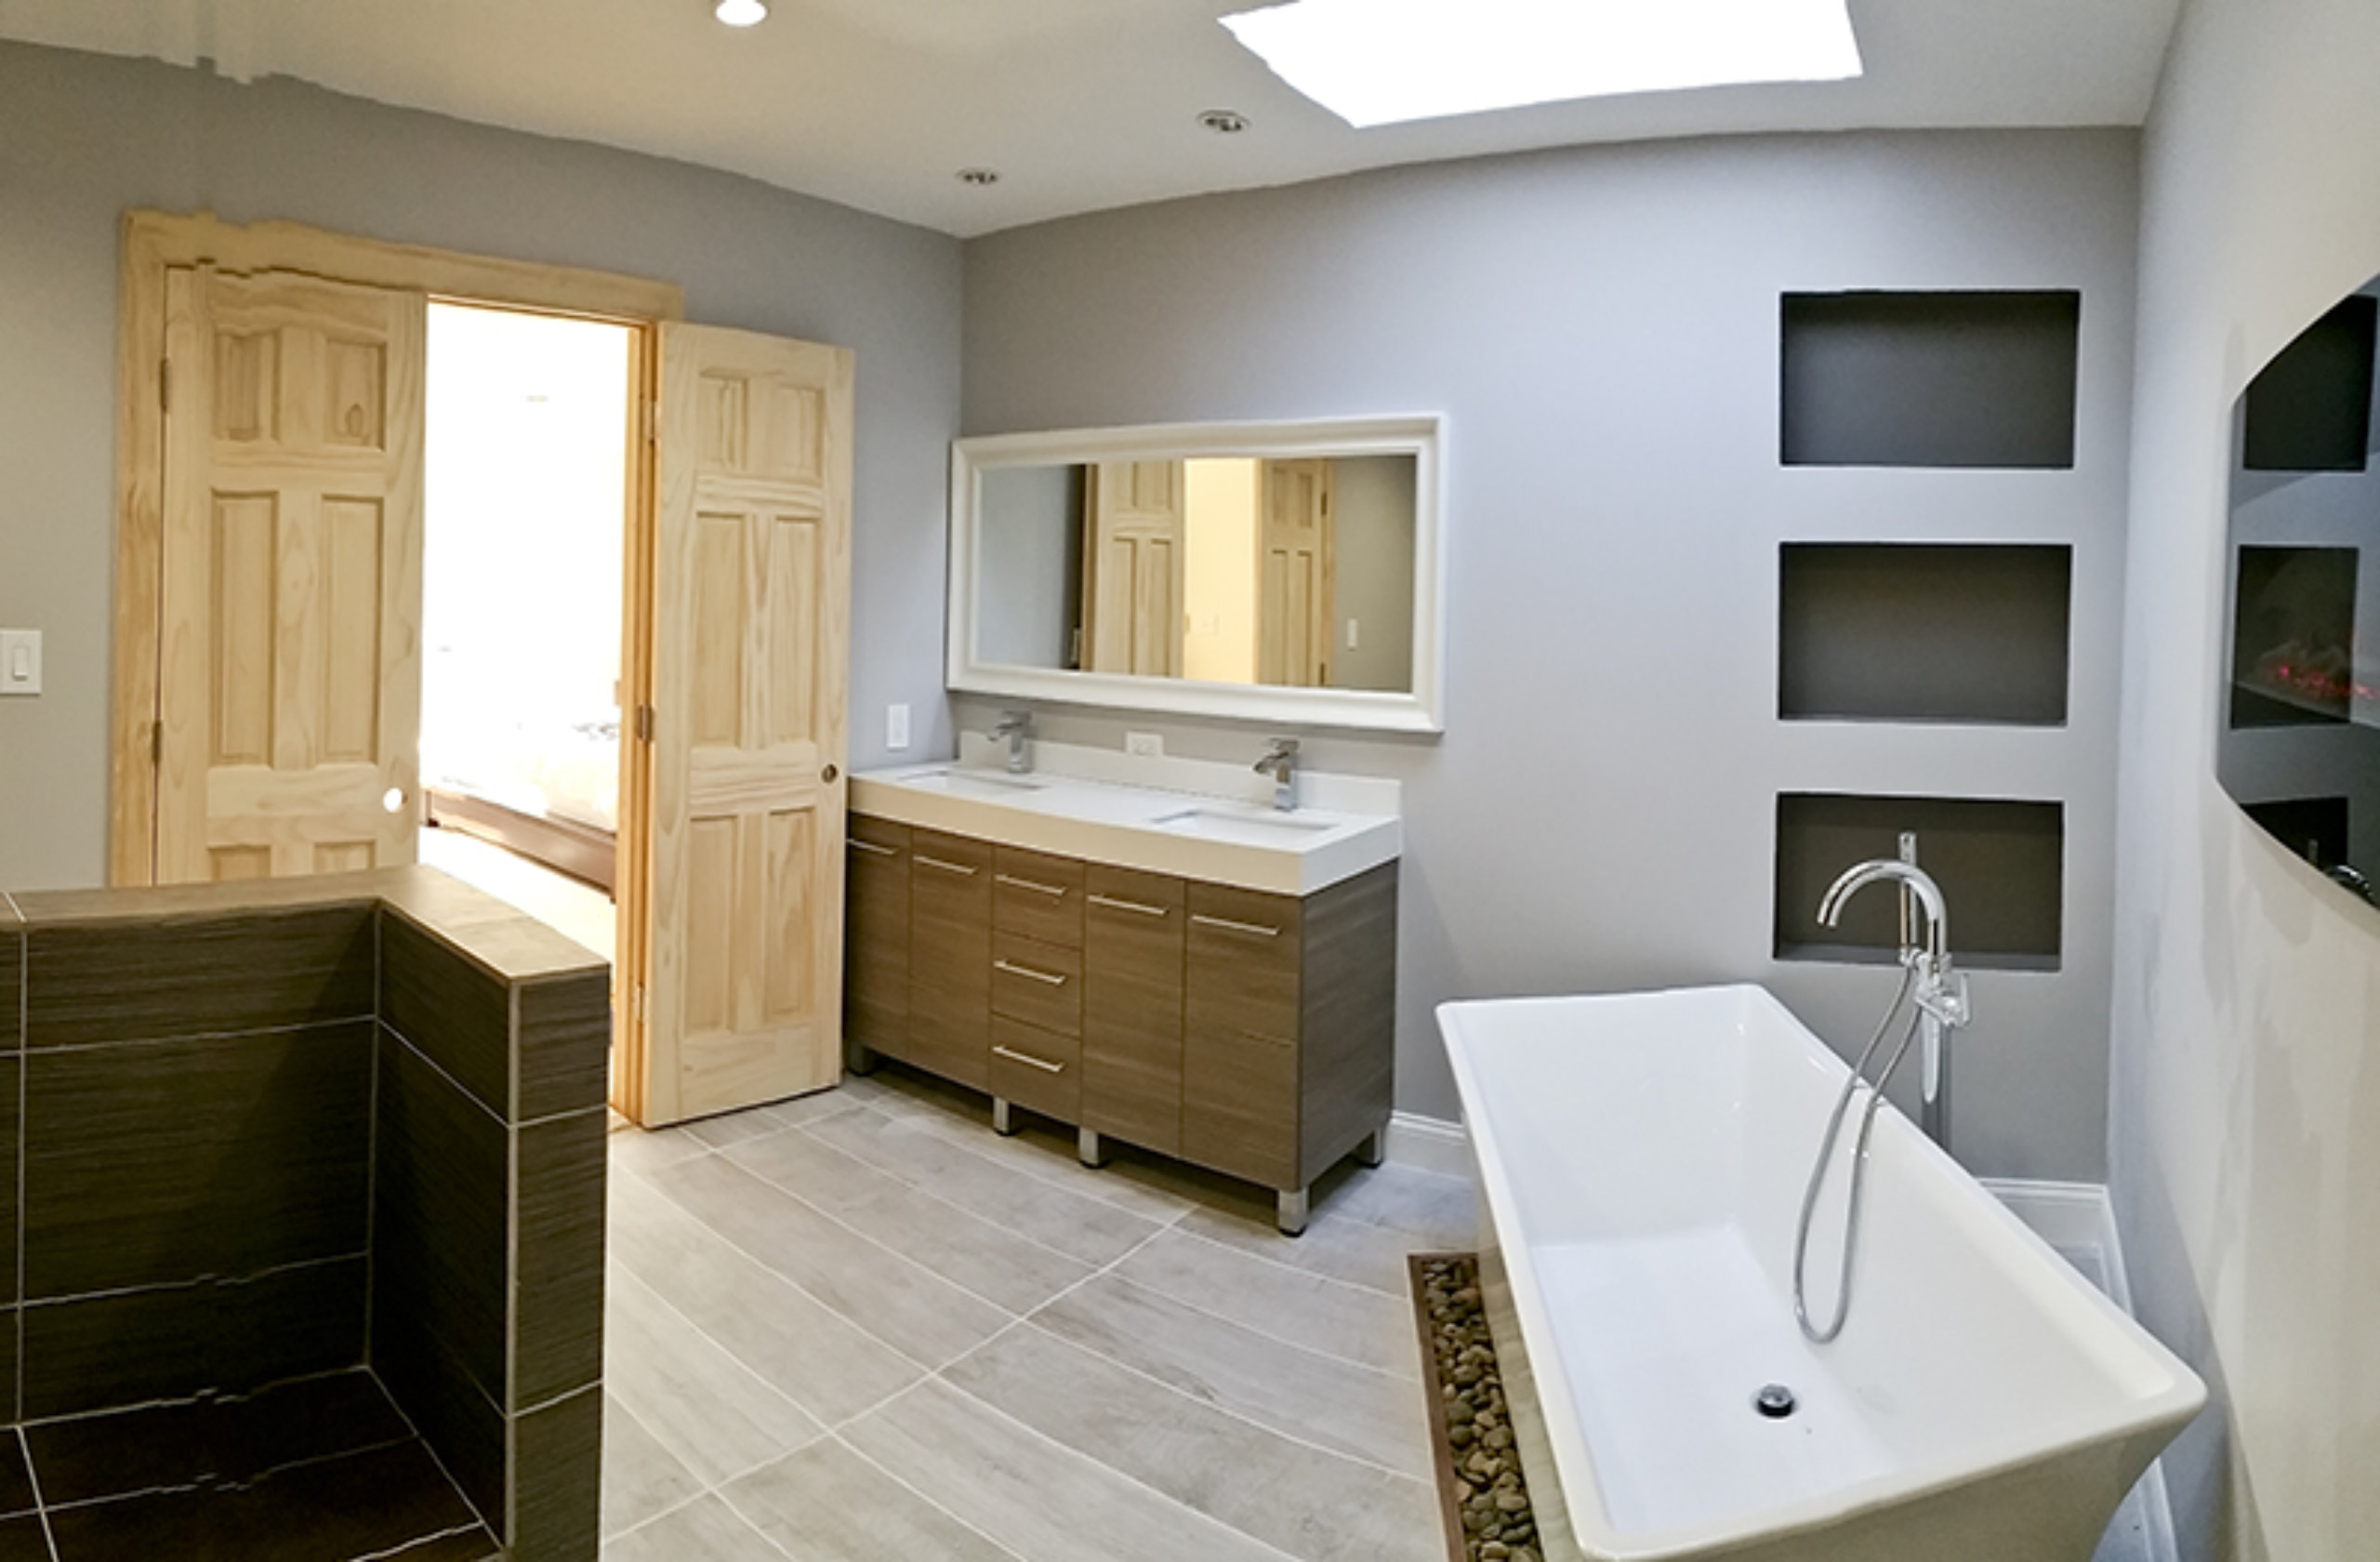 Skokie IL Bathroom Remodel